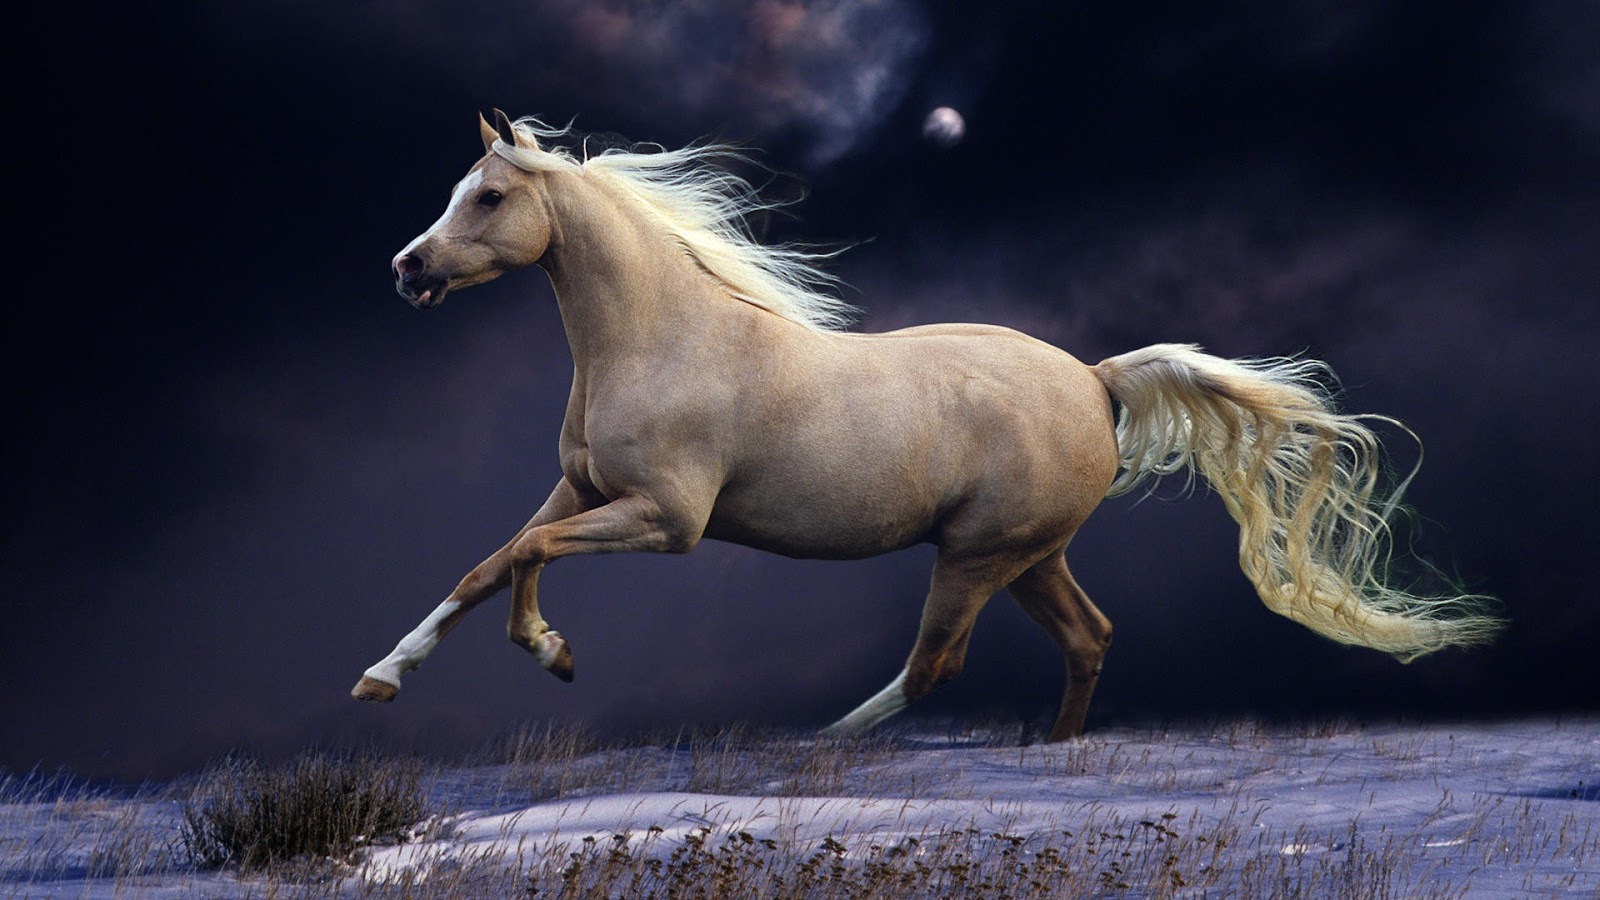 Must see   Wallpaper Horse Stunning - 12  Collection_465140.jpg